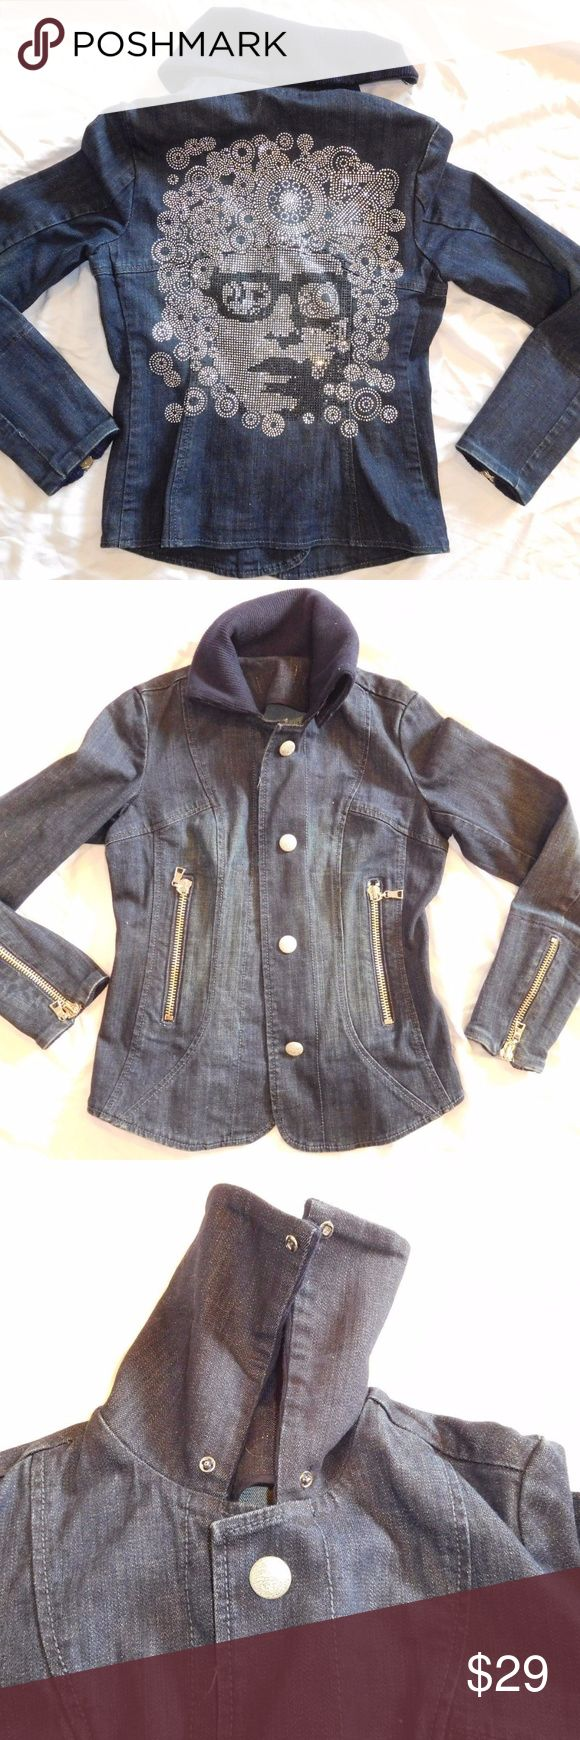 """7 SEVEN Jeans Denim Jacket Rhinestone Bling RARE SEVEN7 JEANS Jacket * Dark Wash Denim - MAKE AN OFFER! Size XS (NO size tag-see measurements) """"OZ"""" Rhinestone Theme on back Wonderful fitted jacket from """"SEVEN"""" Jeans. Dark wash denim,  zippers up the arms and pockets; hidden buttons.  Around neck is thick sweater like foldover material.  Sparkles like no other! Unique and original.  I believe it was from a Sample Sale, so it may be one-of-a-kind!  Light red stain on inside of neck, NOT…"""